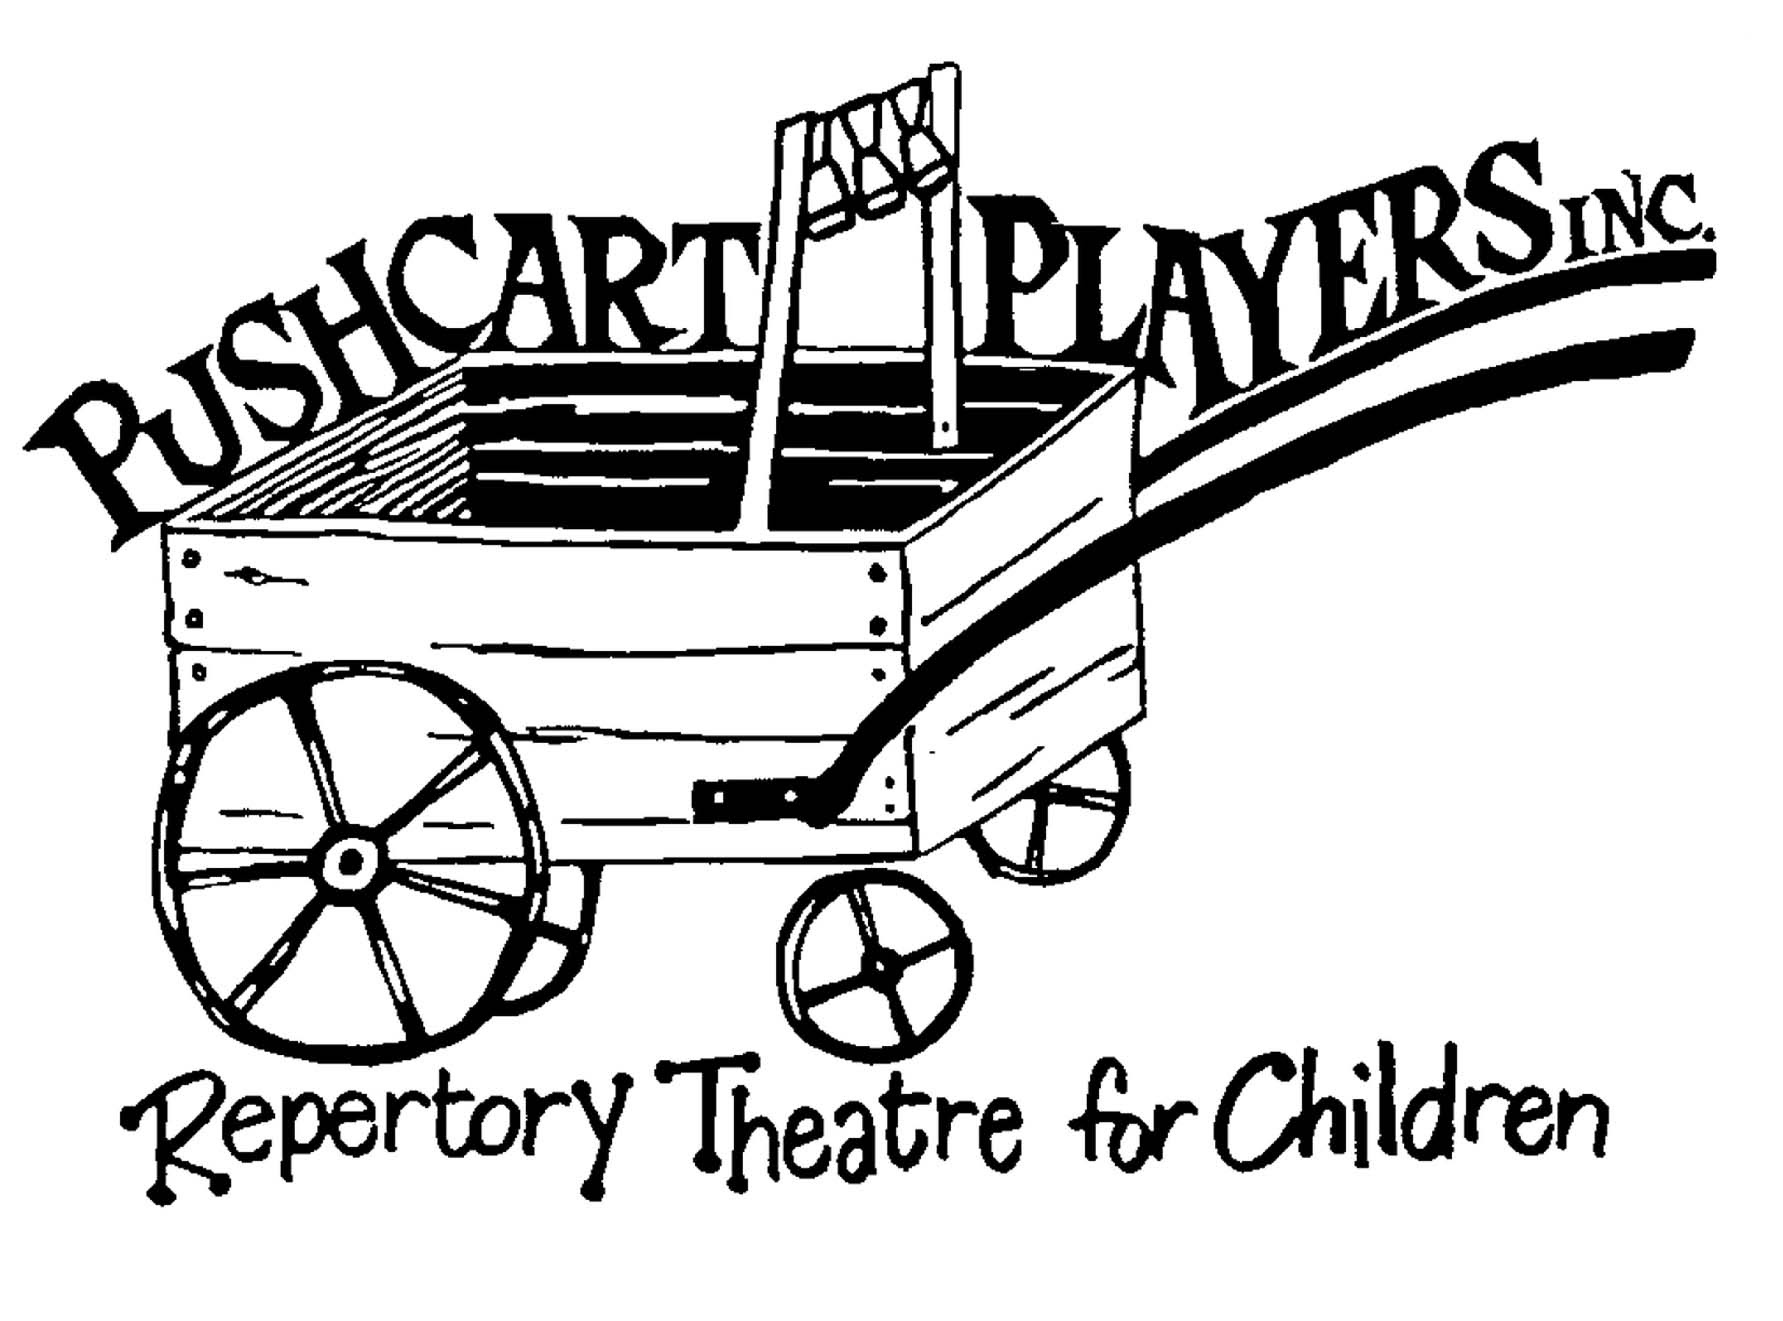 Pushcart Players: Repertory Theatre for Children